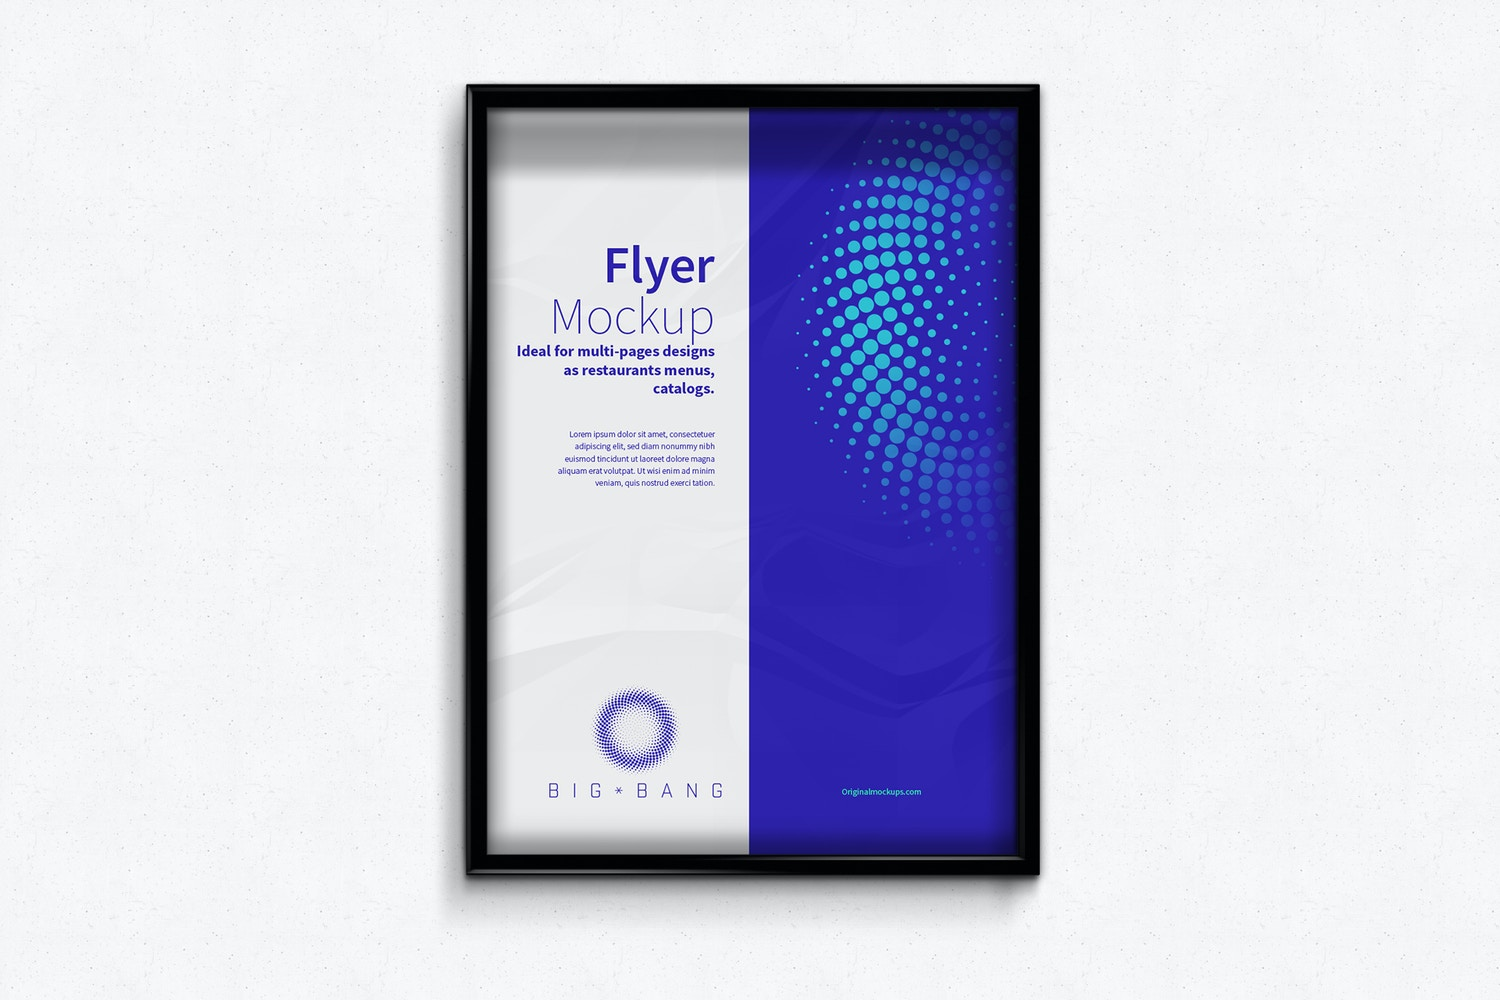 Flyer - Poster Frame Mockups by Original Mockups on Original Mockups